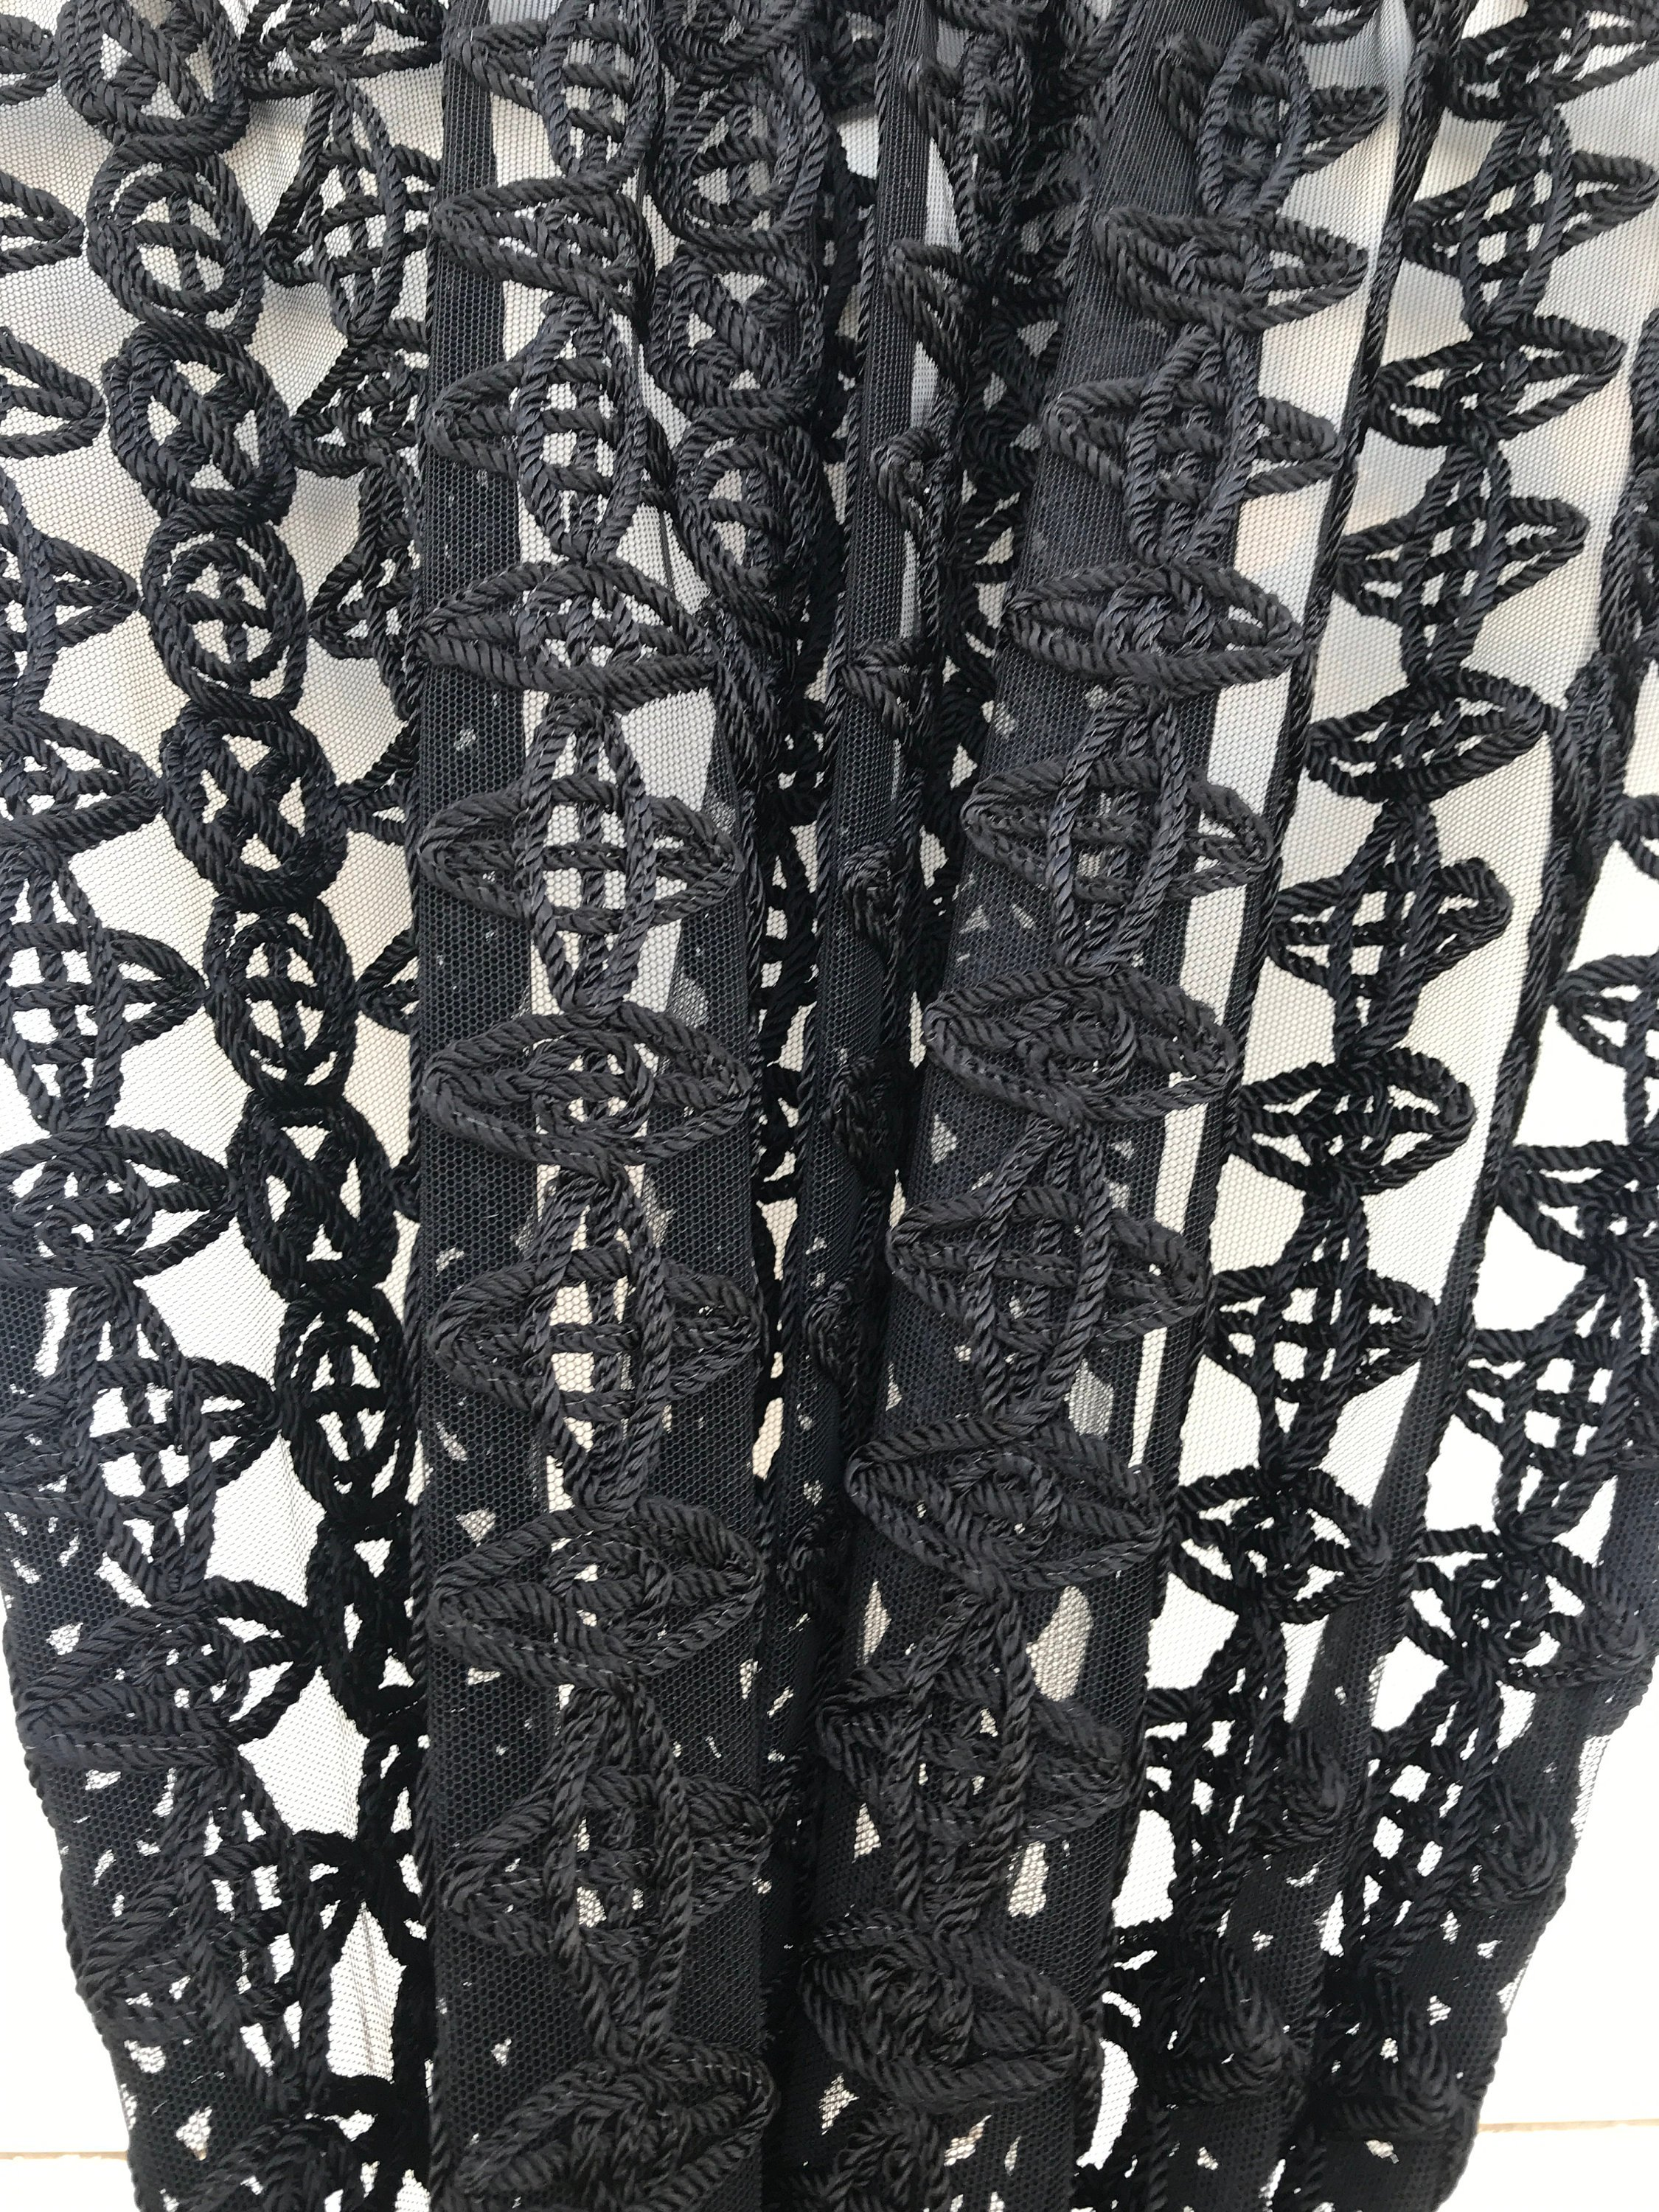 Black corded guipure lace fabric from Marco Lagattolla,  bridal